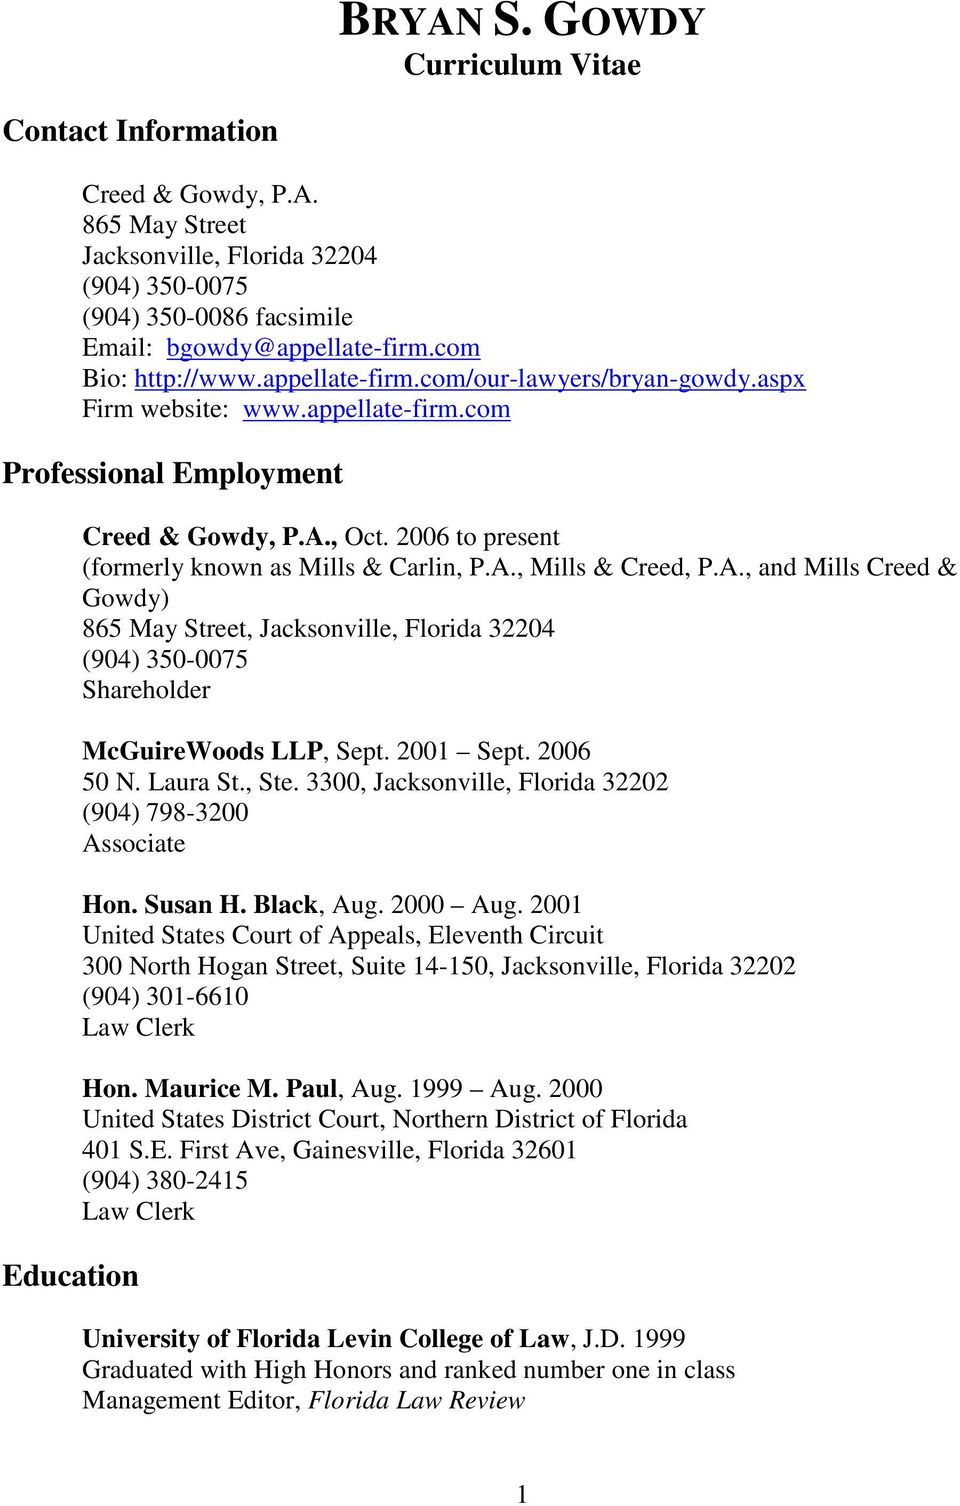 2006 to present (formerly known as Mills & Carlin, P.A., Mills & Creed, P.A., and Mills Creed & Gowdy) 865 May Street, Jacksonville, Florida 32204 (904) 350-0075 Shareholder McGuireWoods LLP, Sept.